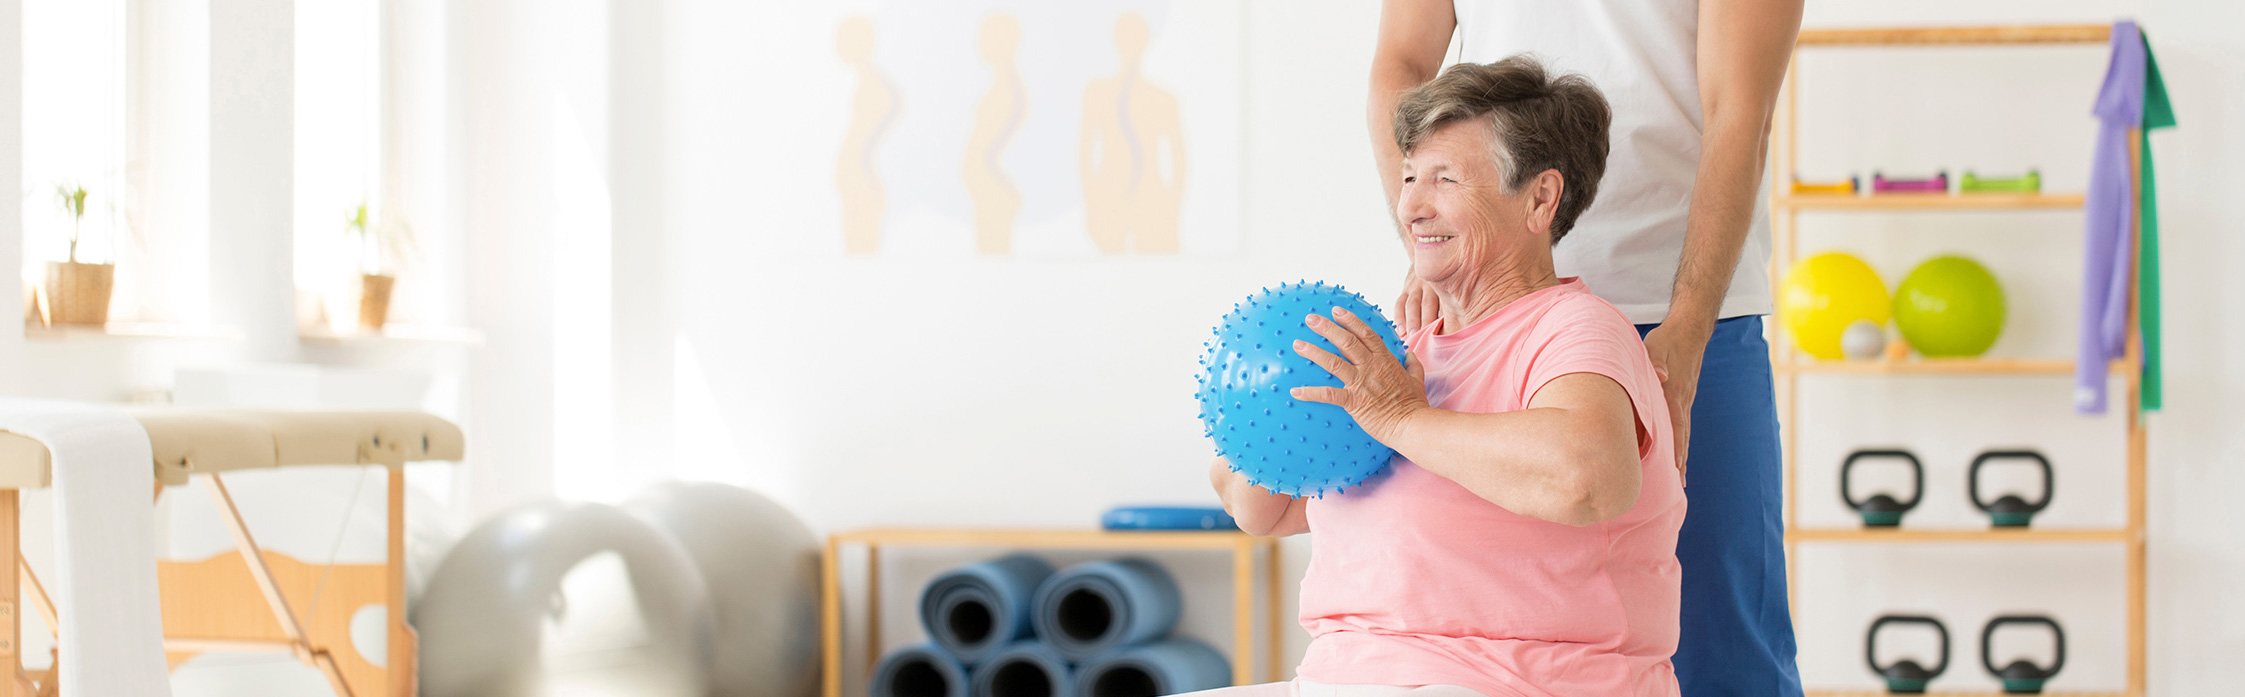 elderly lady holding a ball exercising with pink top on in a home gym